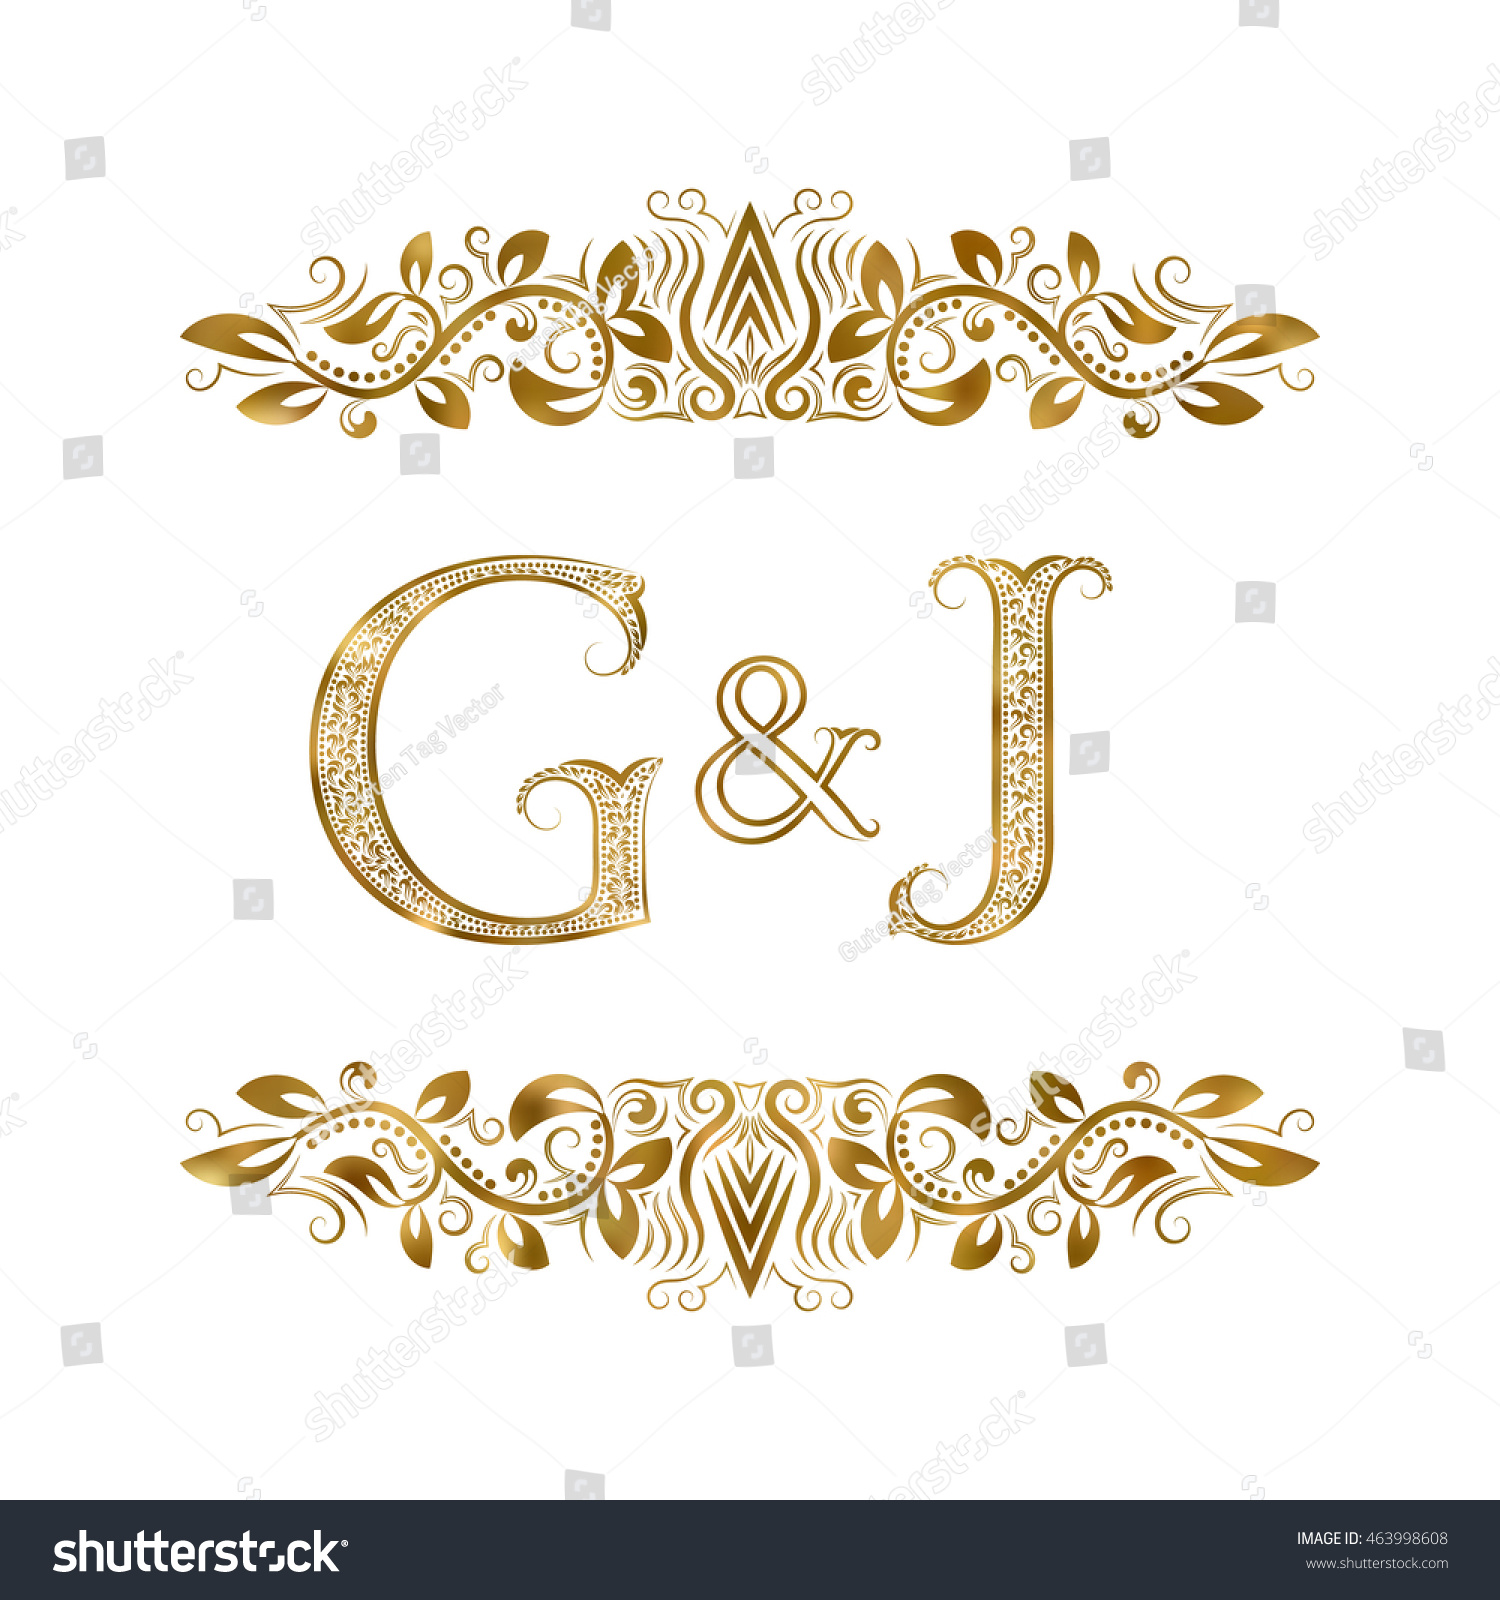 Royalty Free G And J Vintage Initials Logo Symbol 463998608 Stock